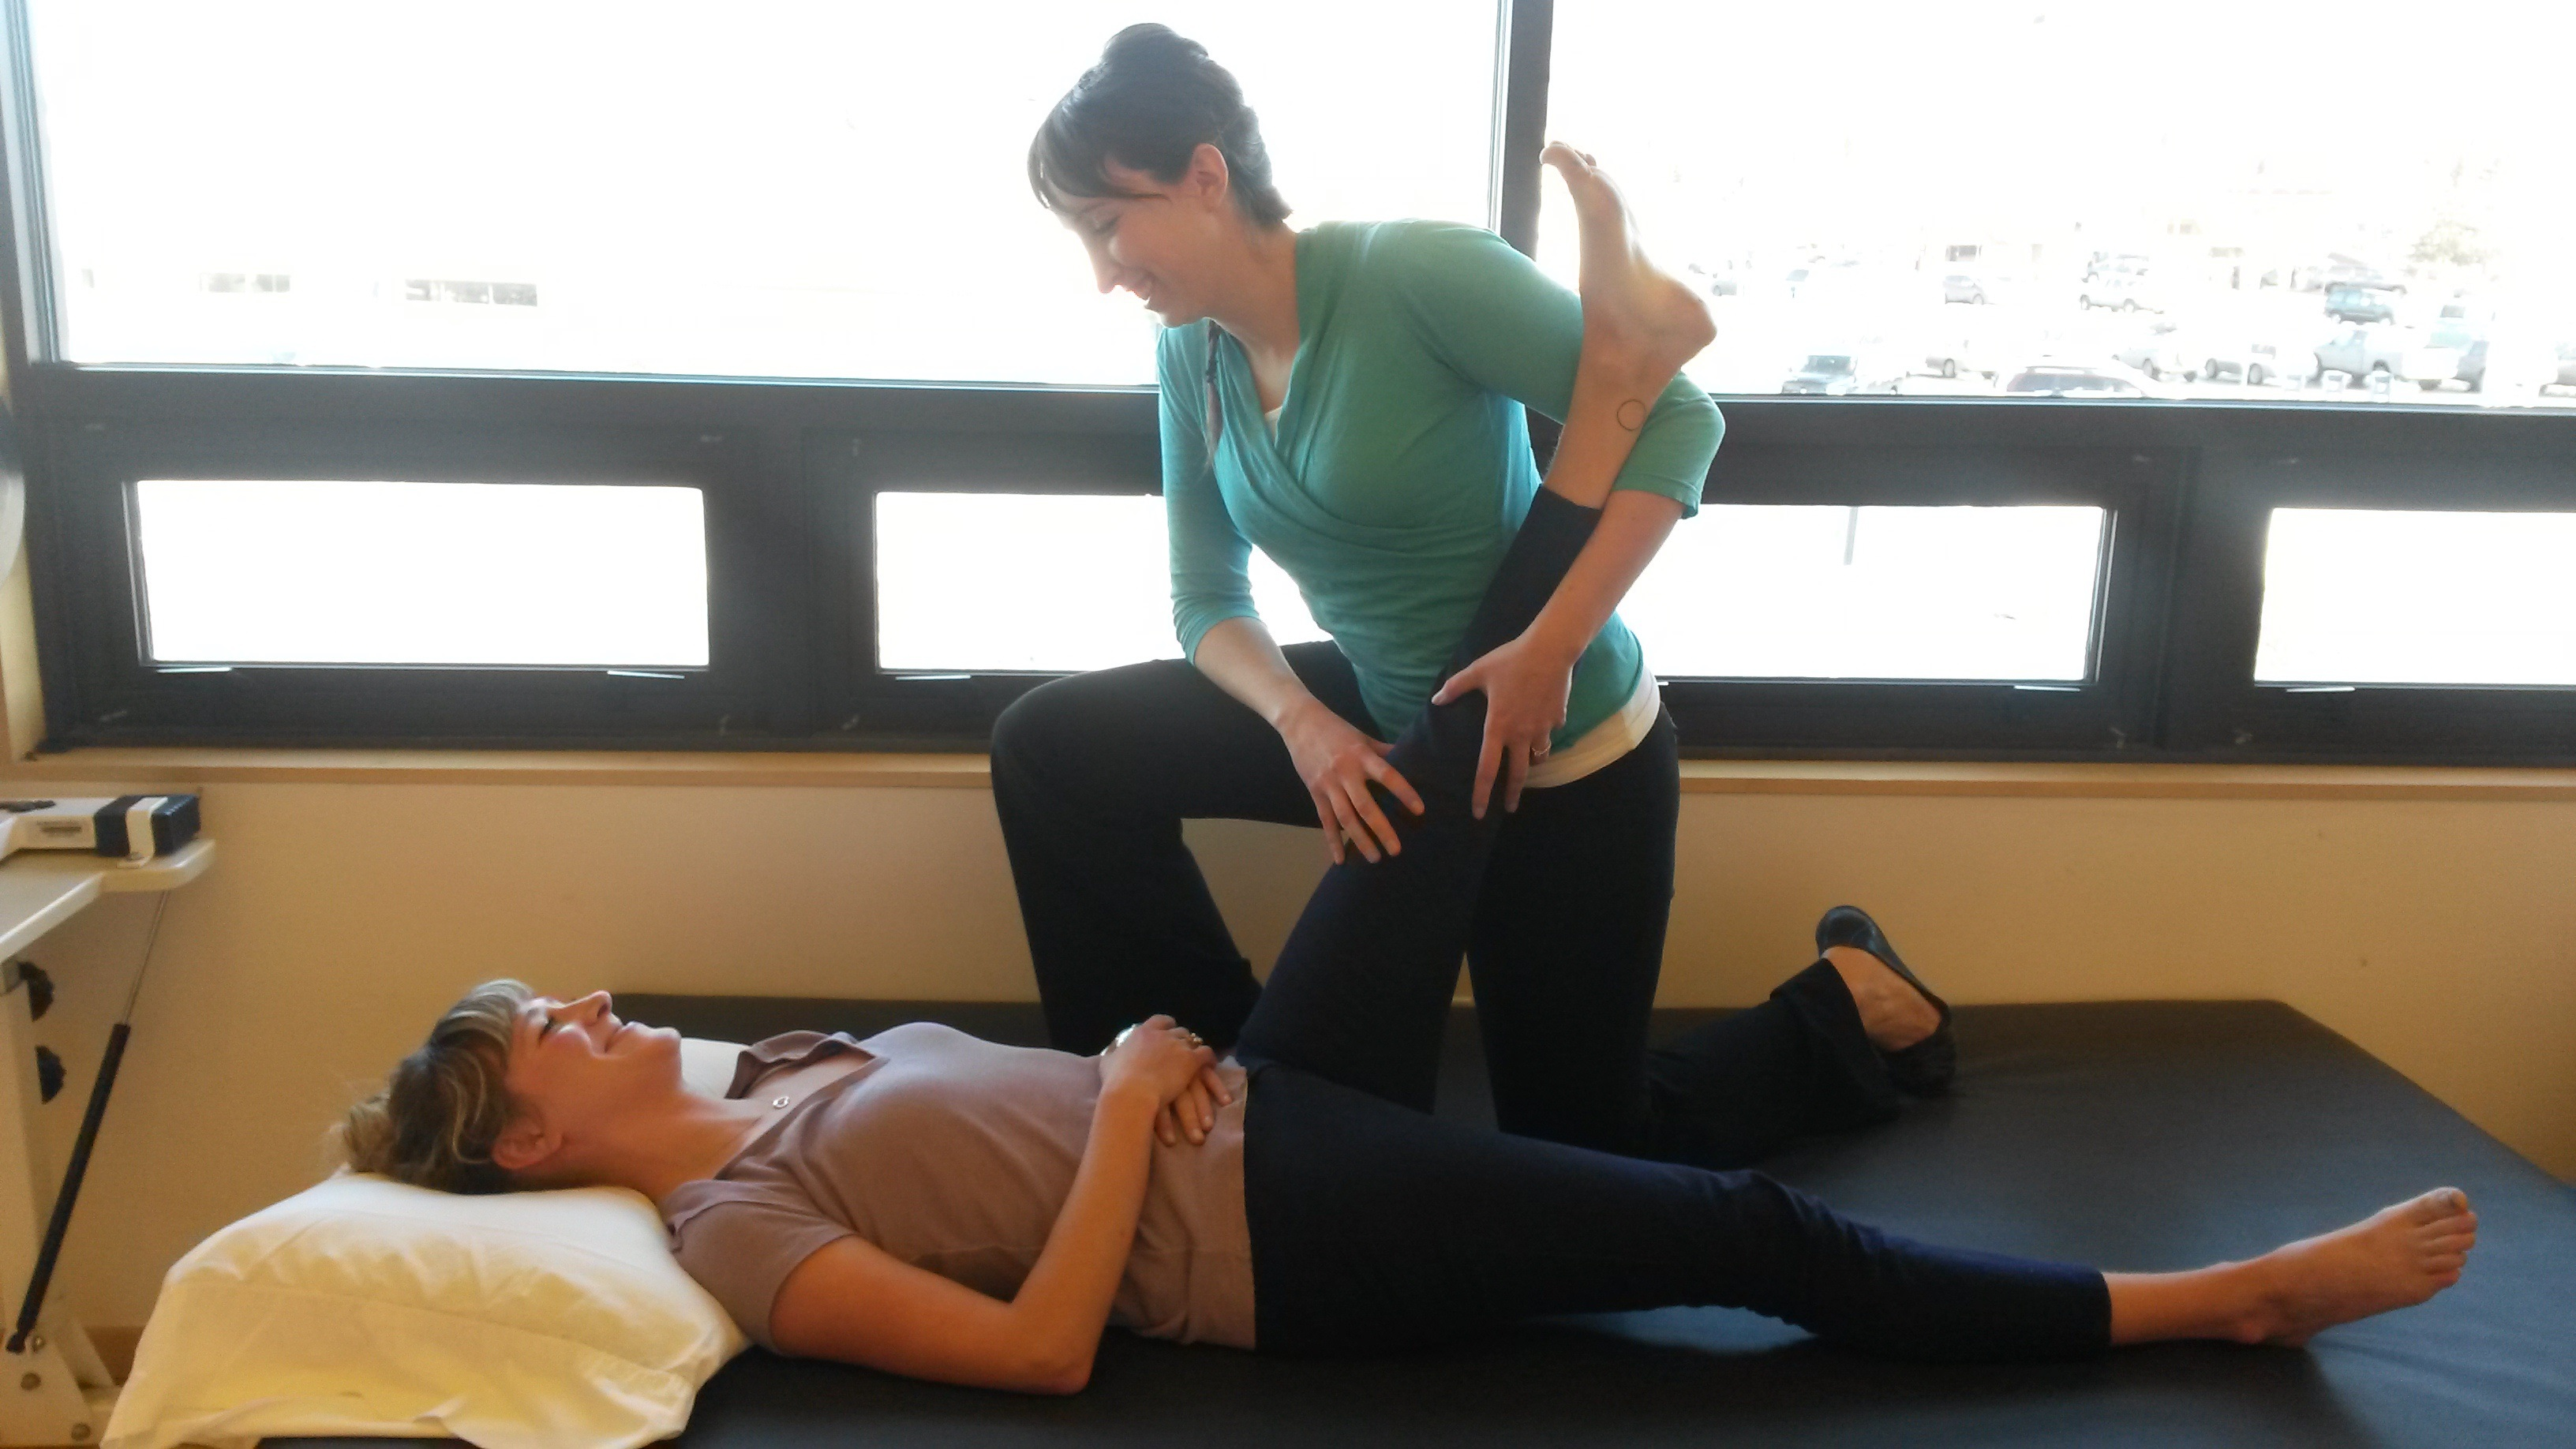 Image of injury rehabilitation in Eagle River, AK